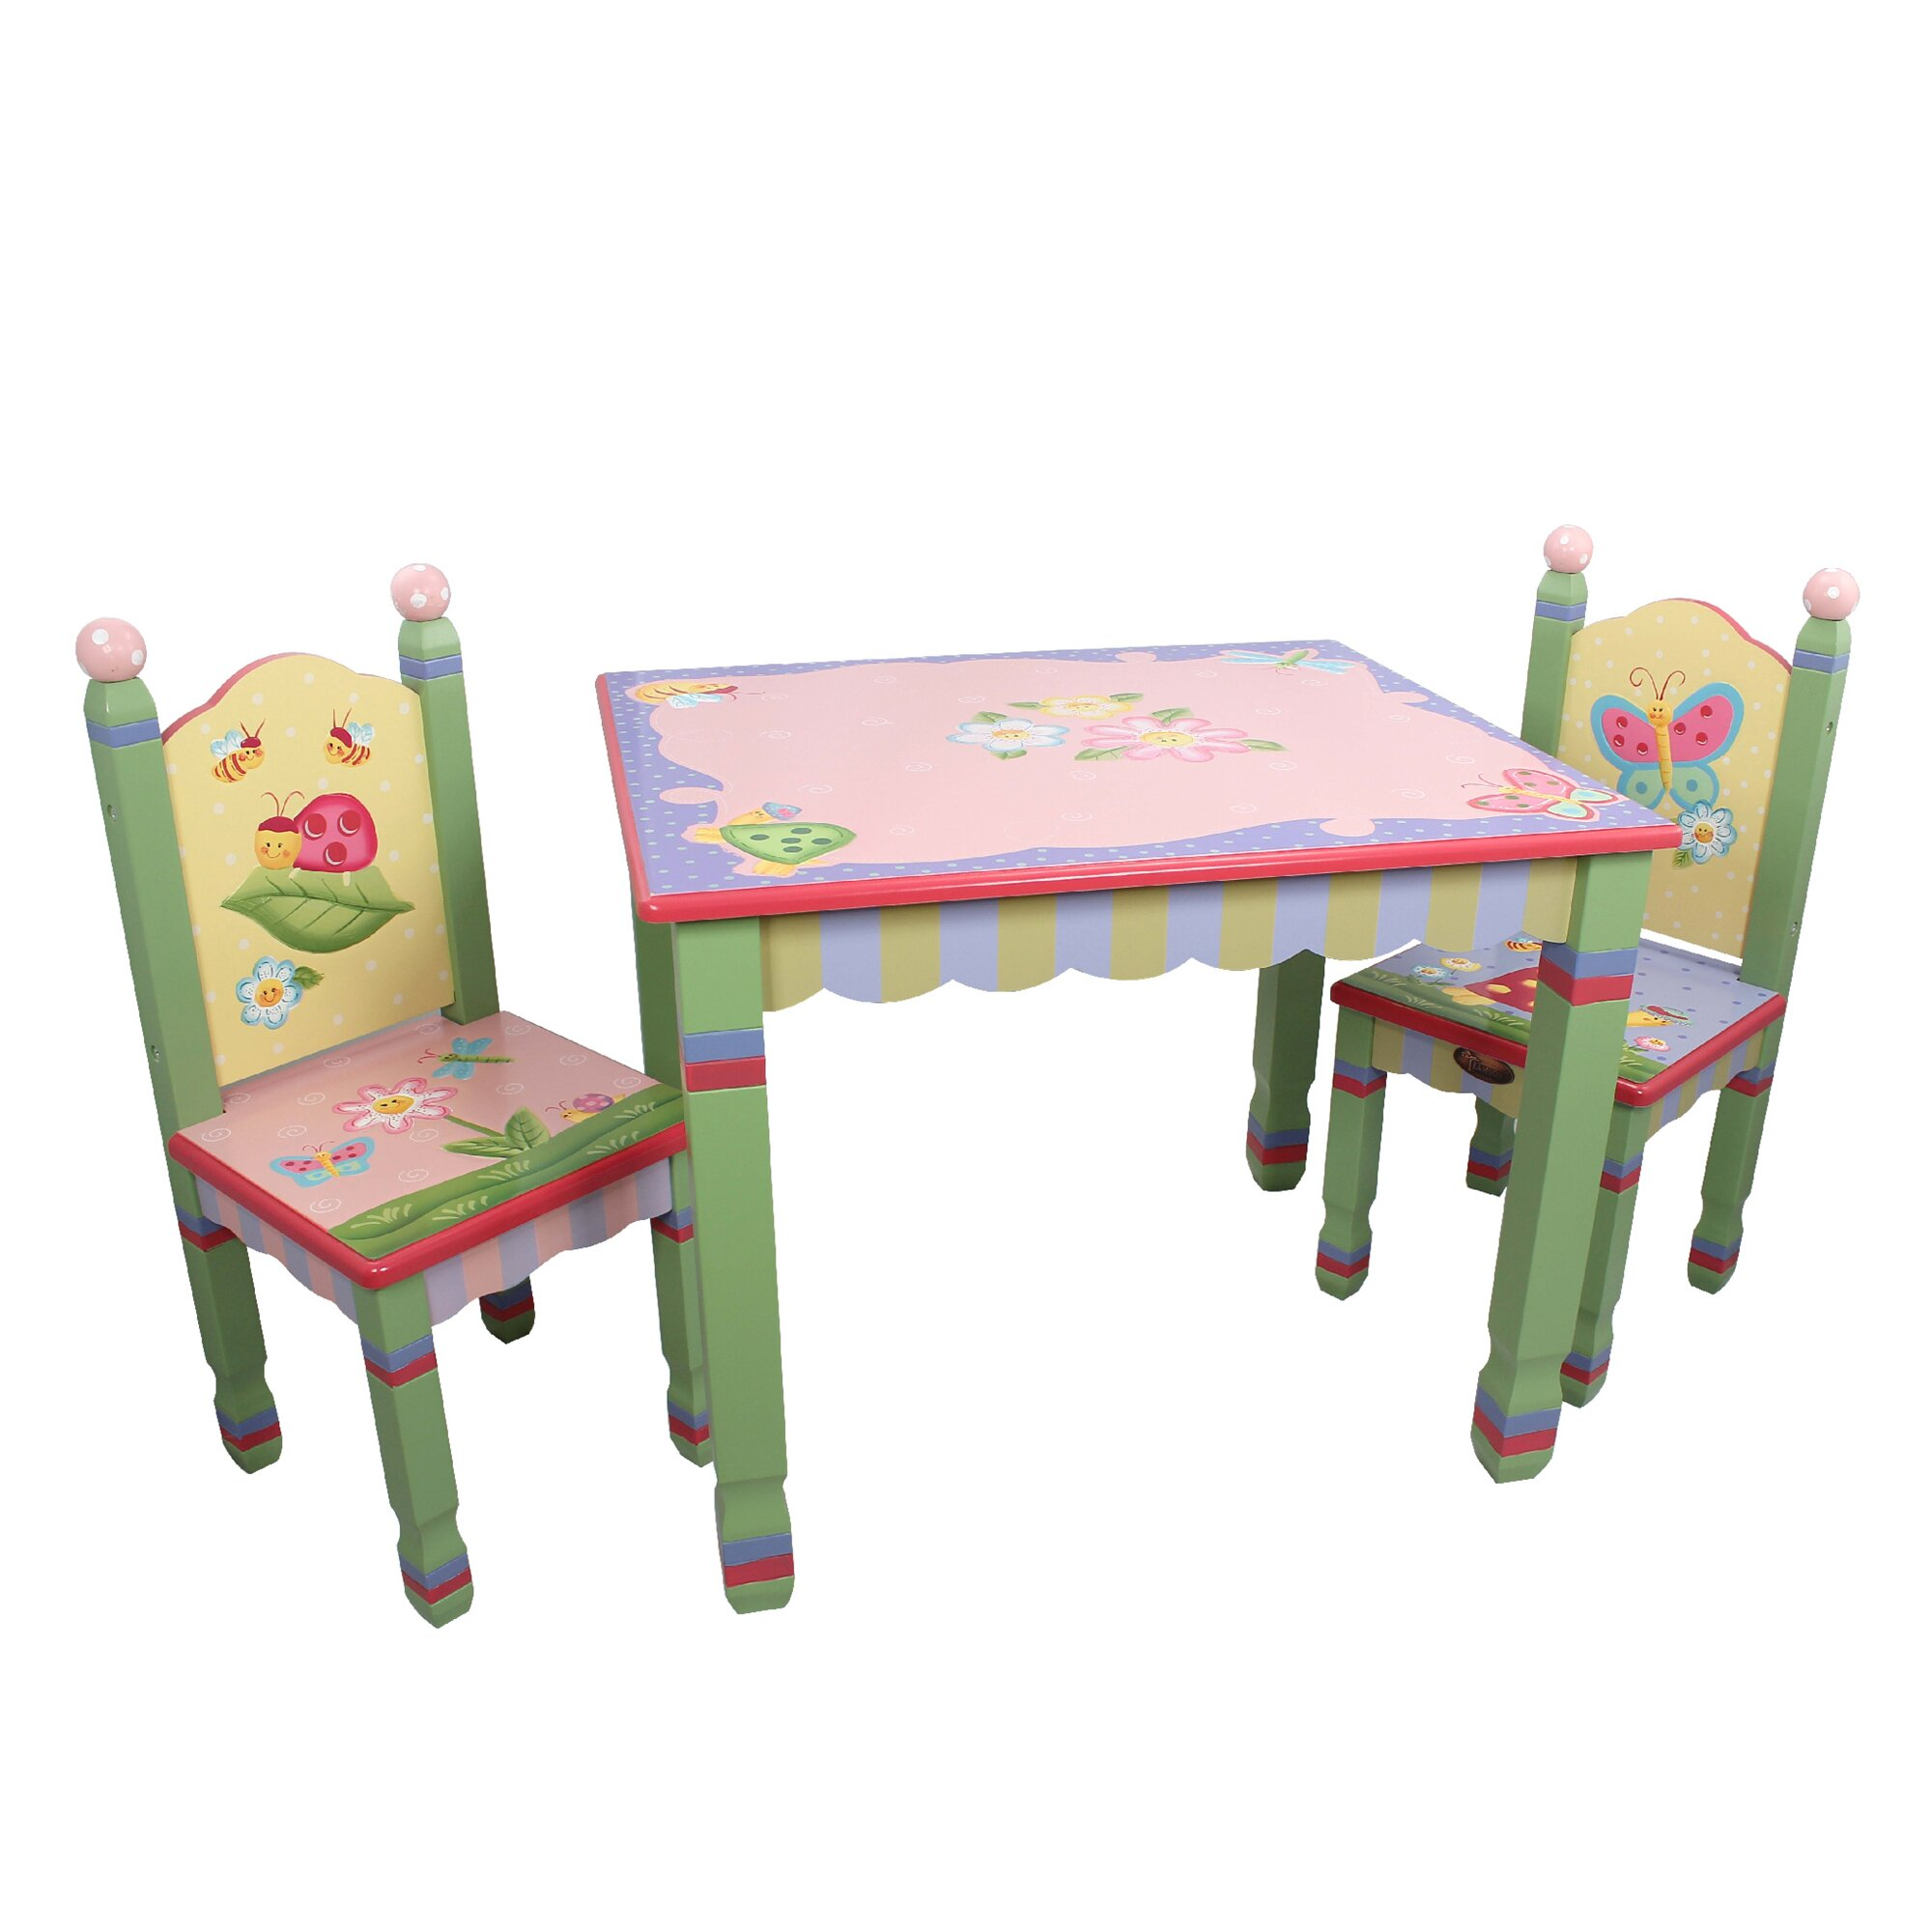 Fantasy fields magic garden kids 3 piece table chair set for Table and chair set